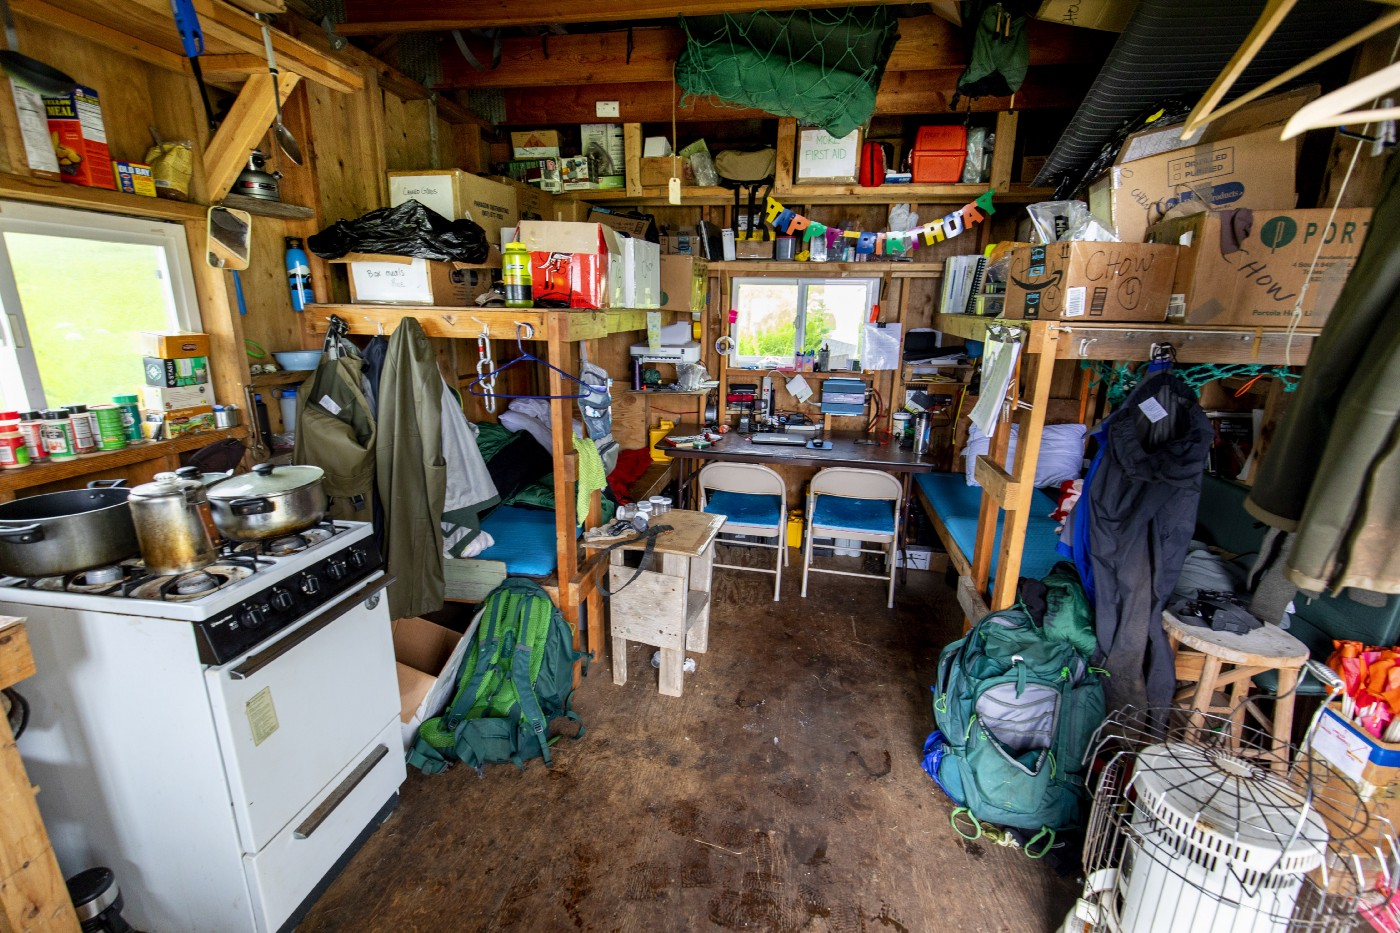 Interior of a small one room cabin showing a stove and oven, two wooden bunks, a table and two chairs near a window, backpacks, and many boxes, supplies, and gear.